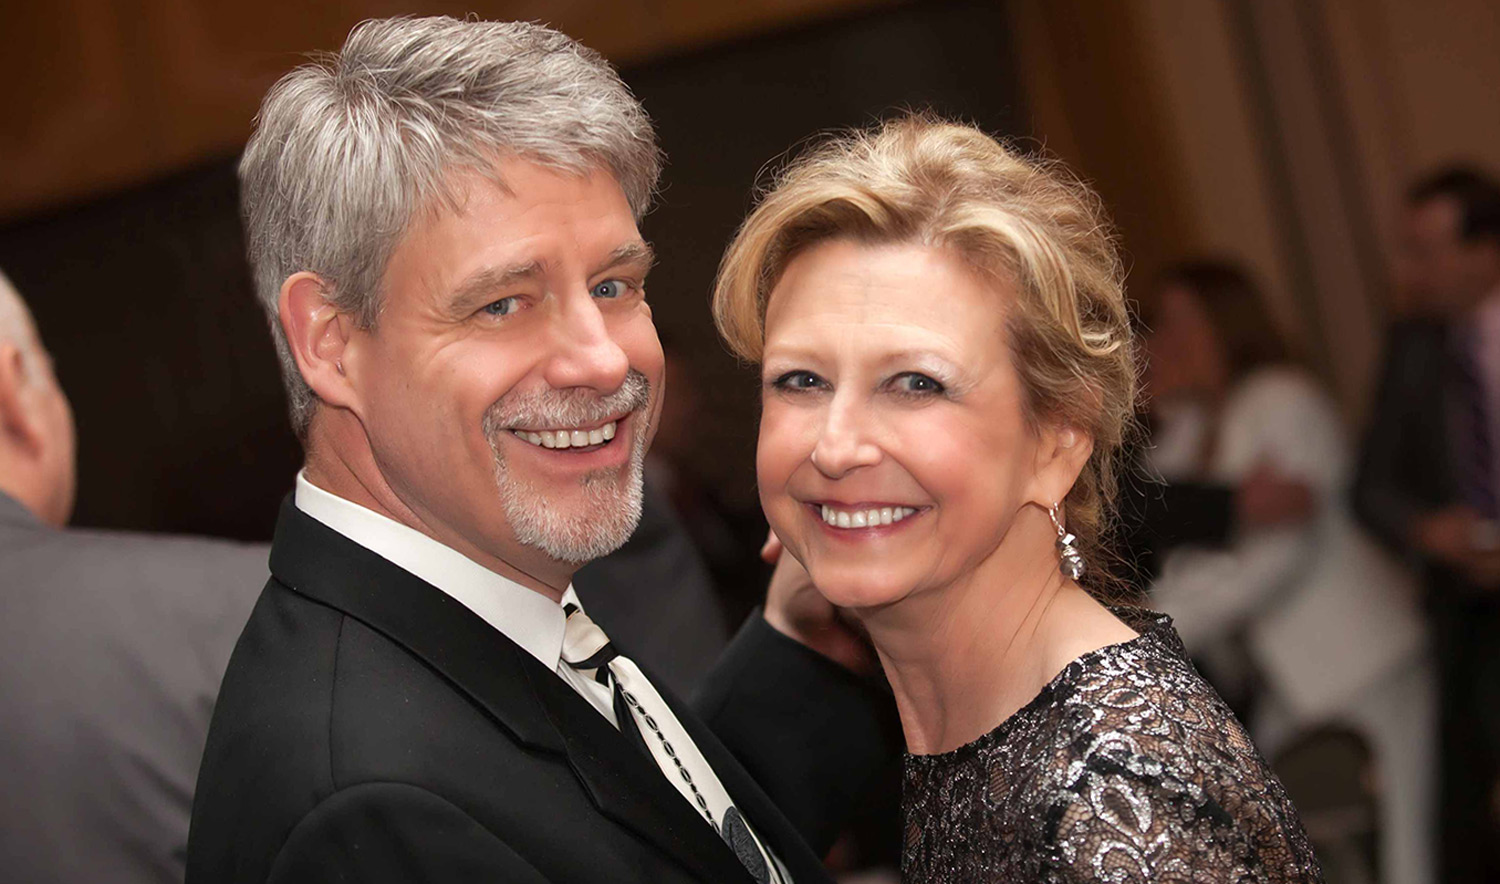 A portrait of Bill and Debra Brown at a formal event.